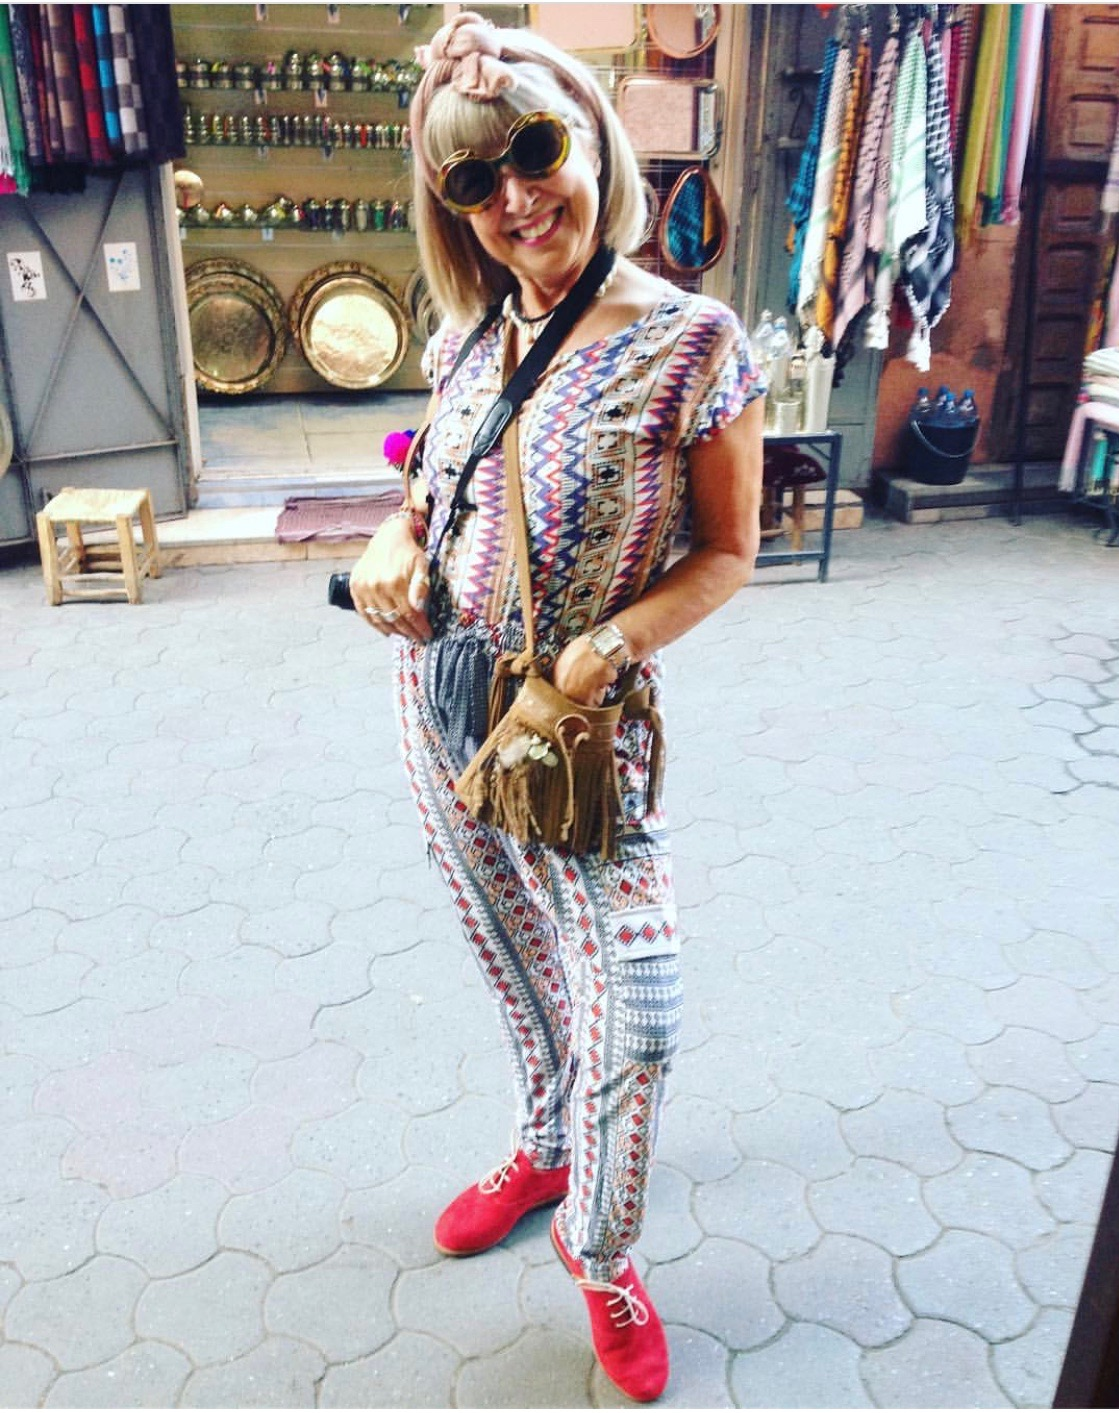 Love my red suede shoes! Handmade in Marrakech